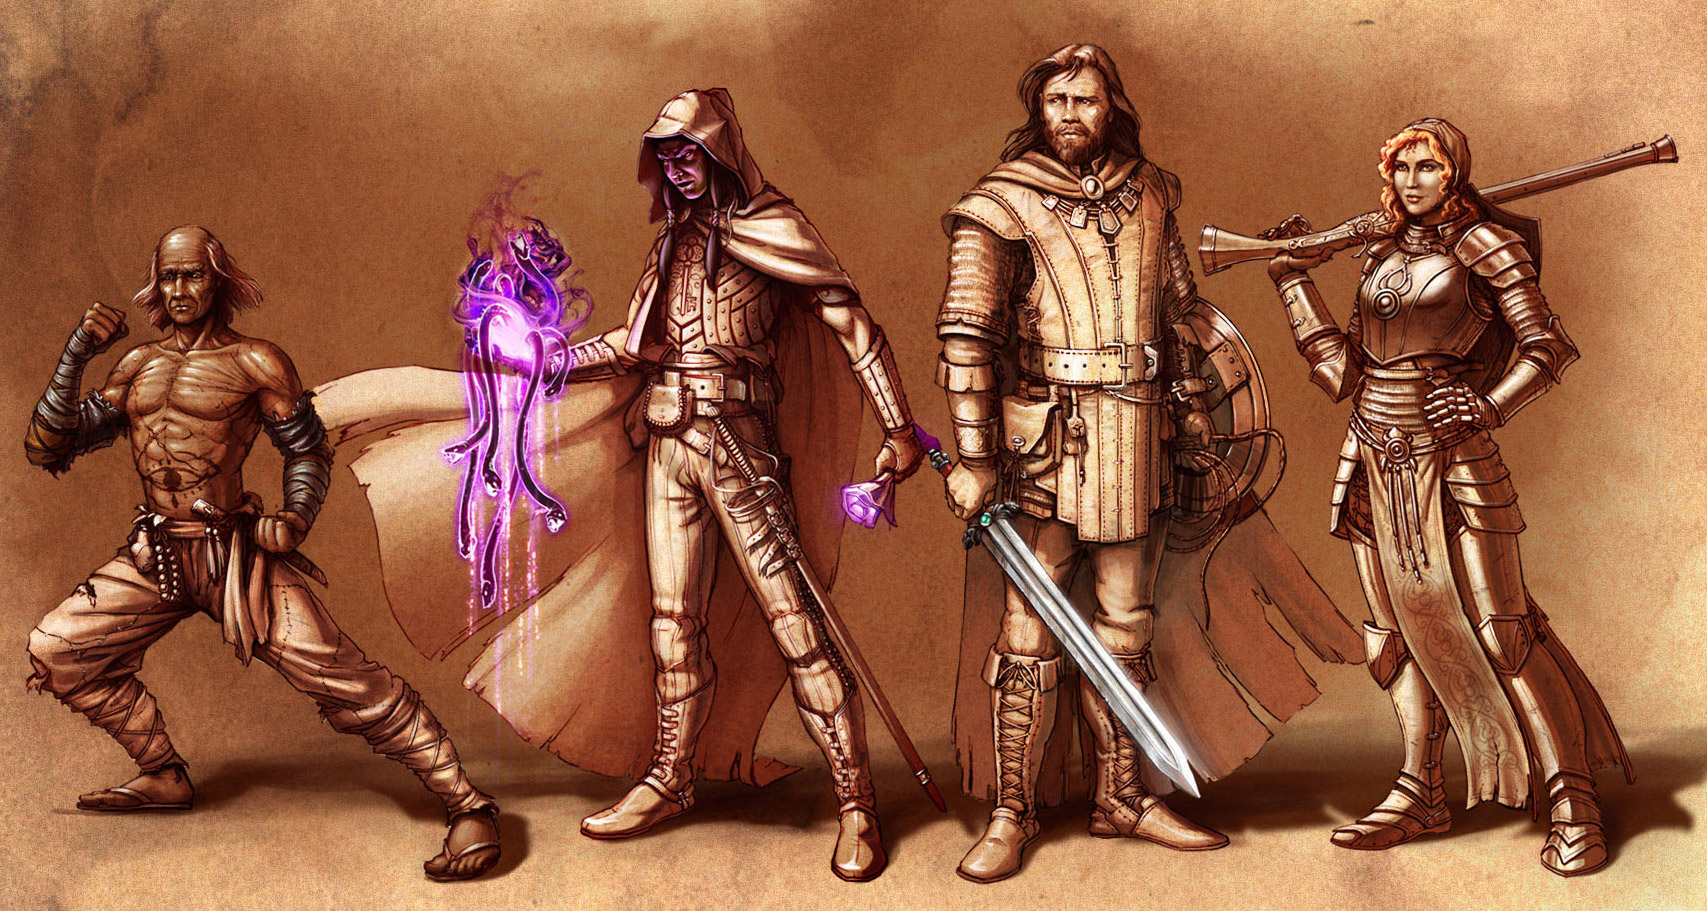 Pillars of Eternity tabletop RPG and card game in the works